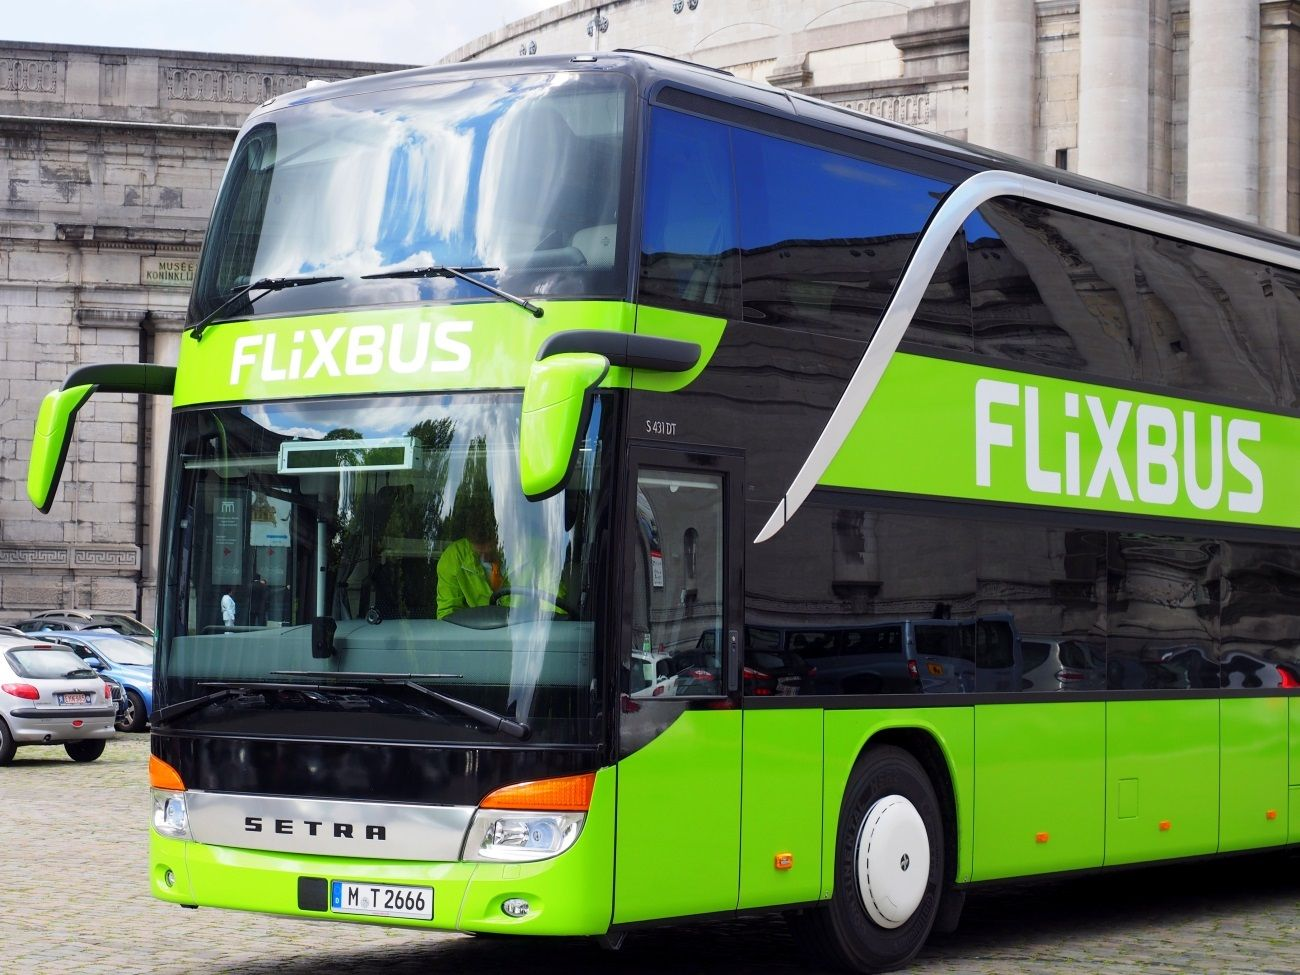 Croatian Bus Companies Watch Out Flixbus Is Coming To Town With 1 Bus Fares